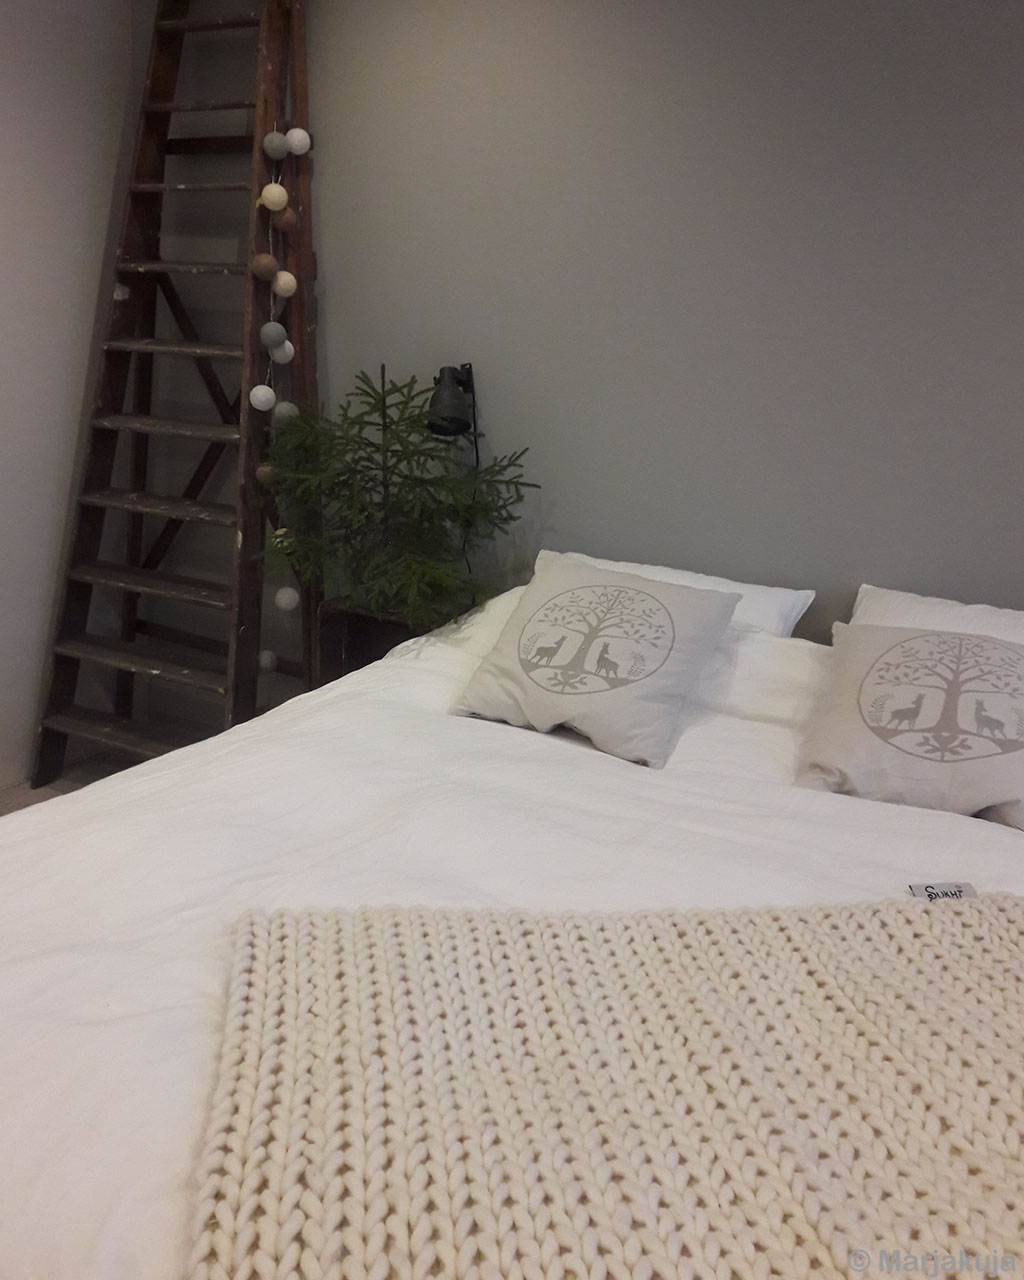 woolen white bed sheet on bed with pillows indian modern room rugs